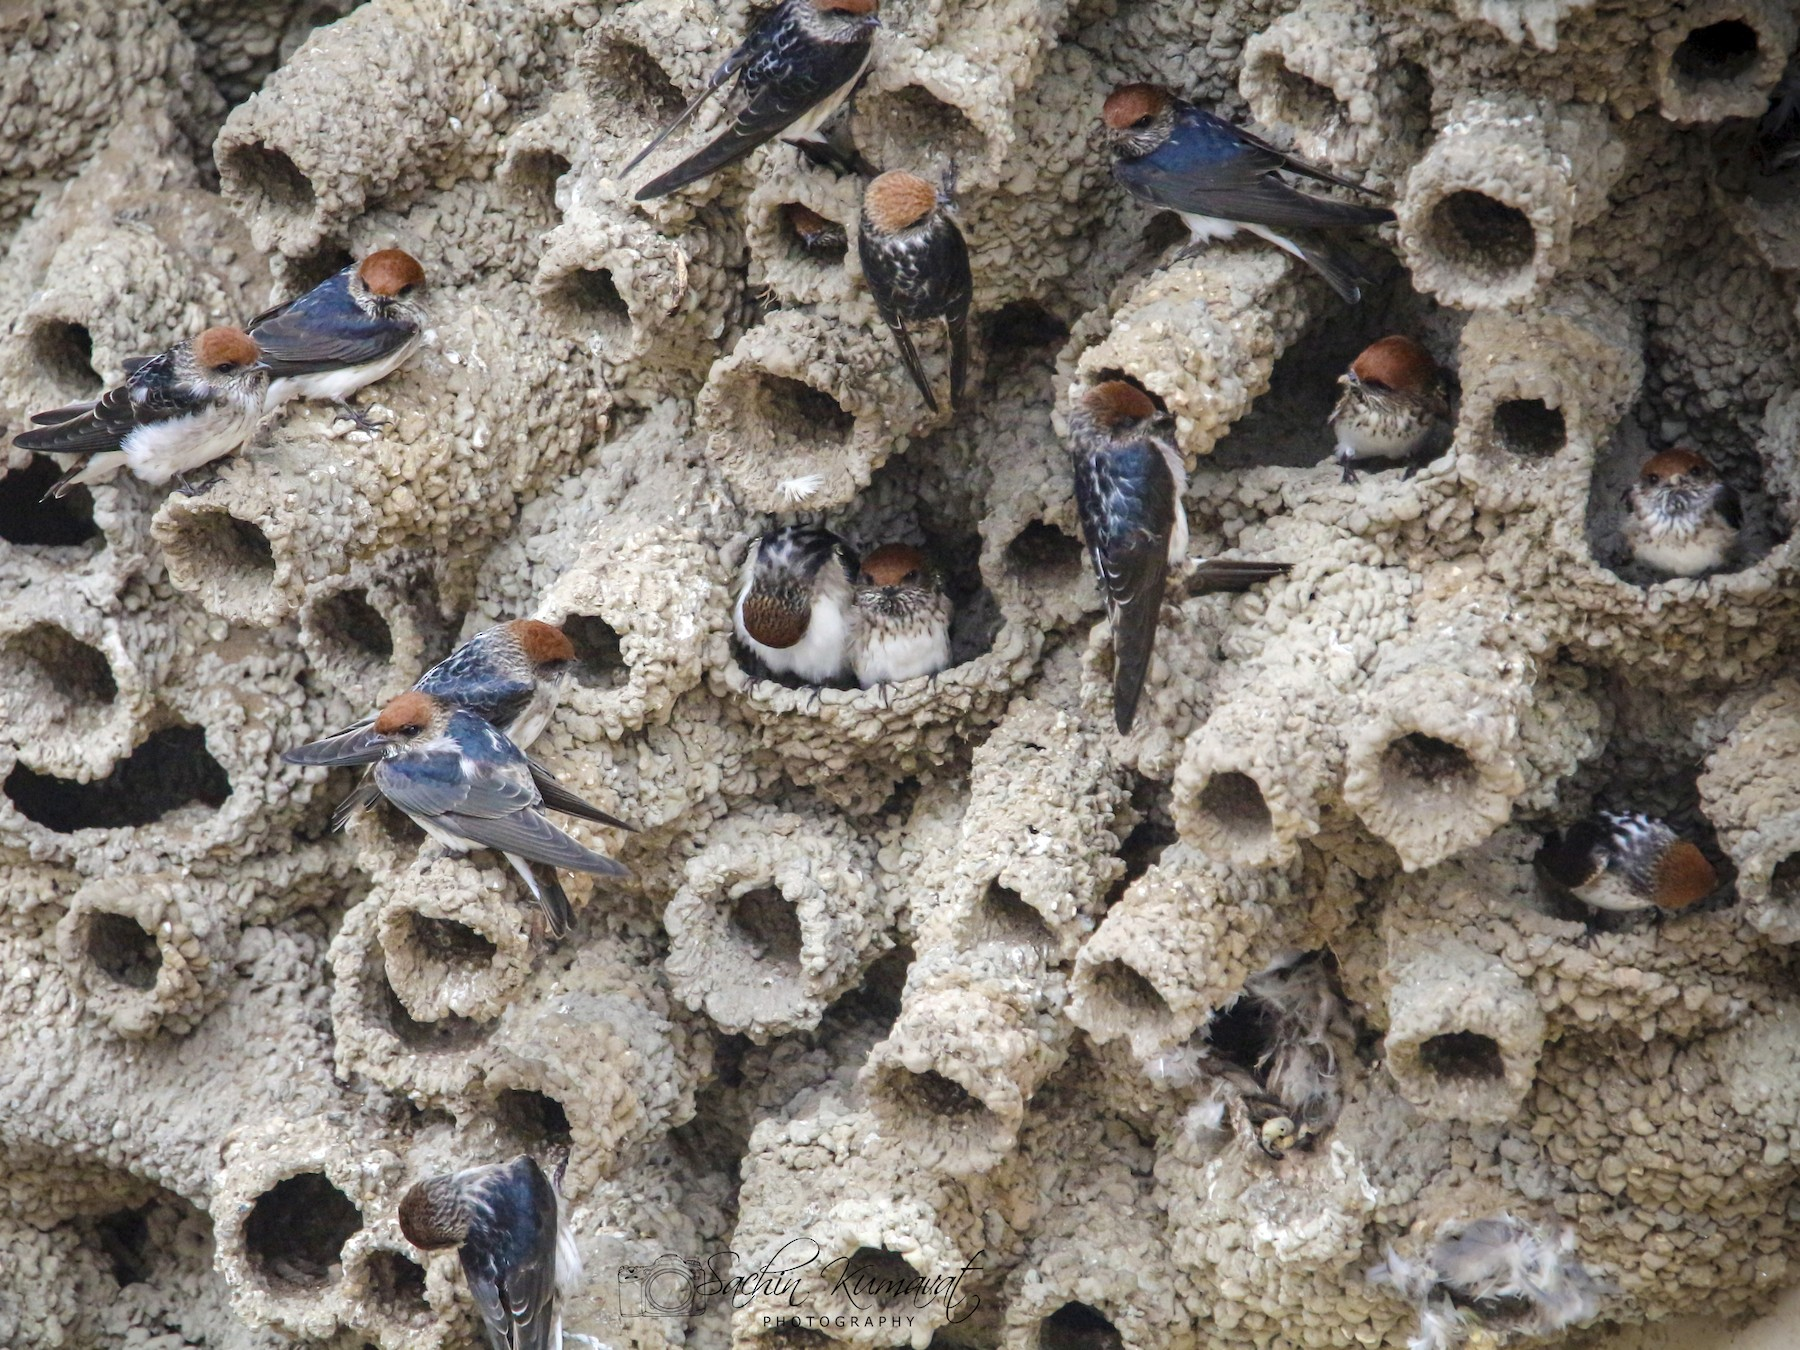 Streak-throated Swallow - Sachin Kumavat